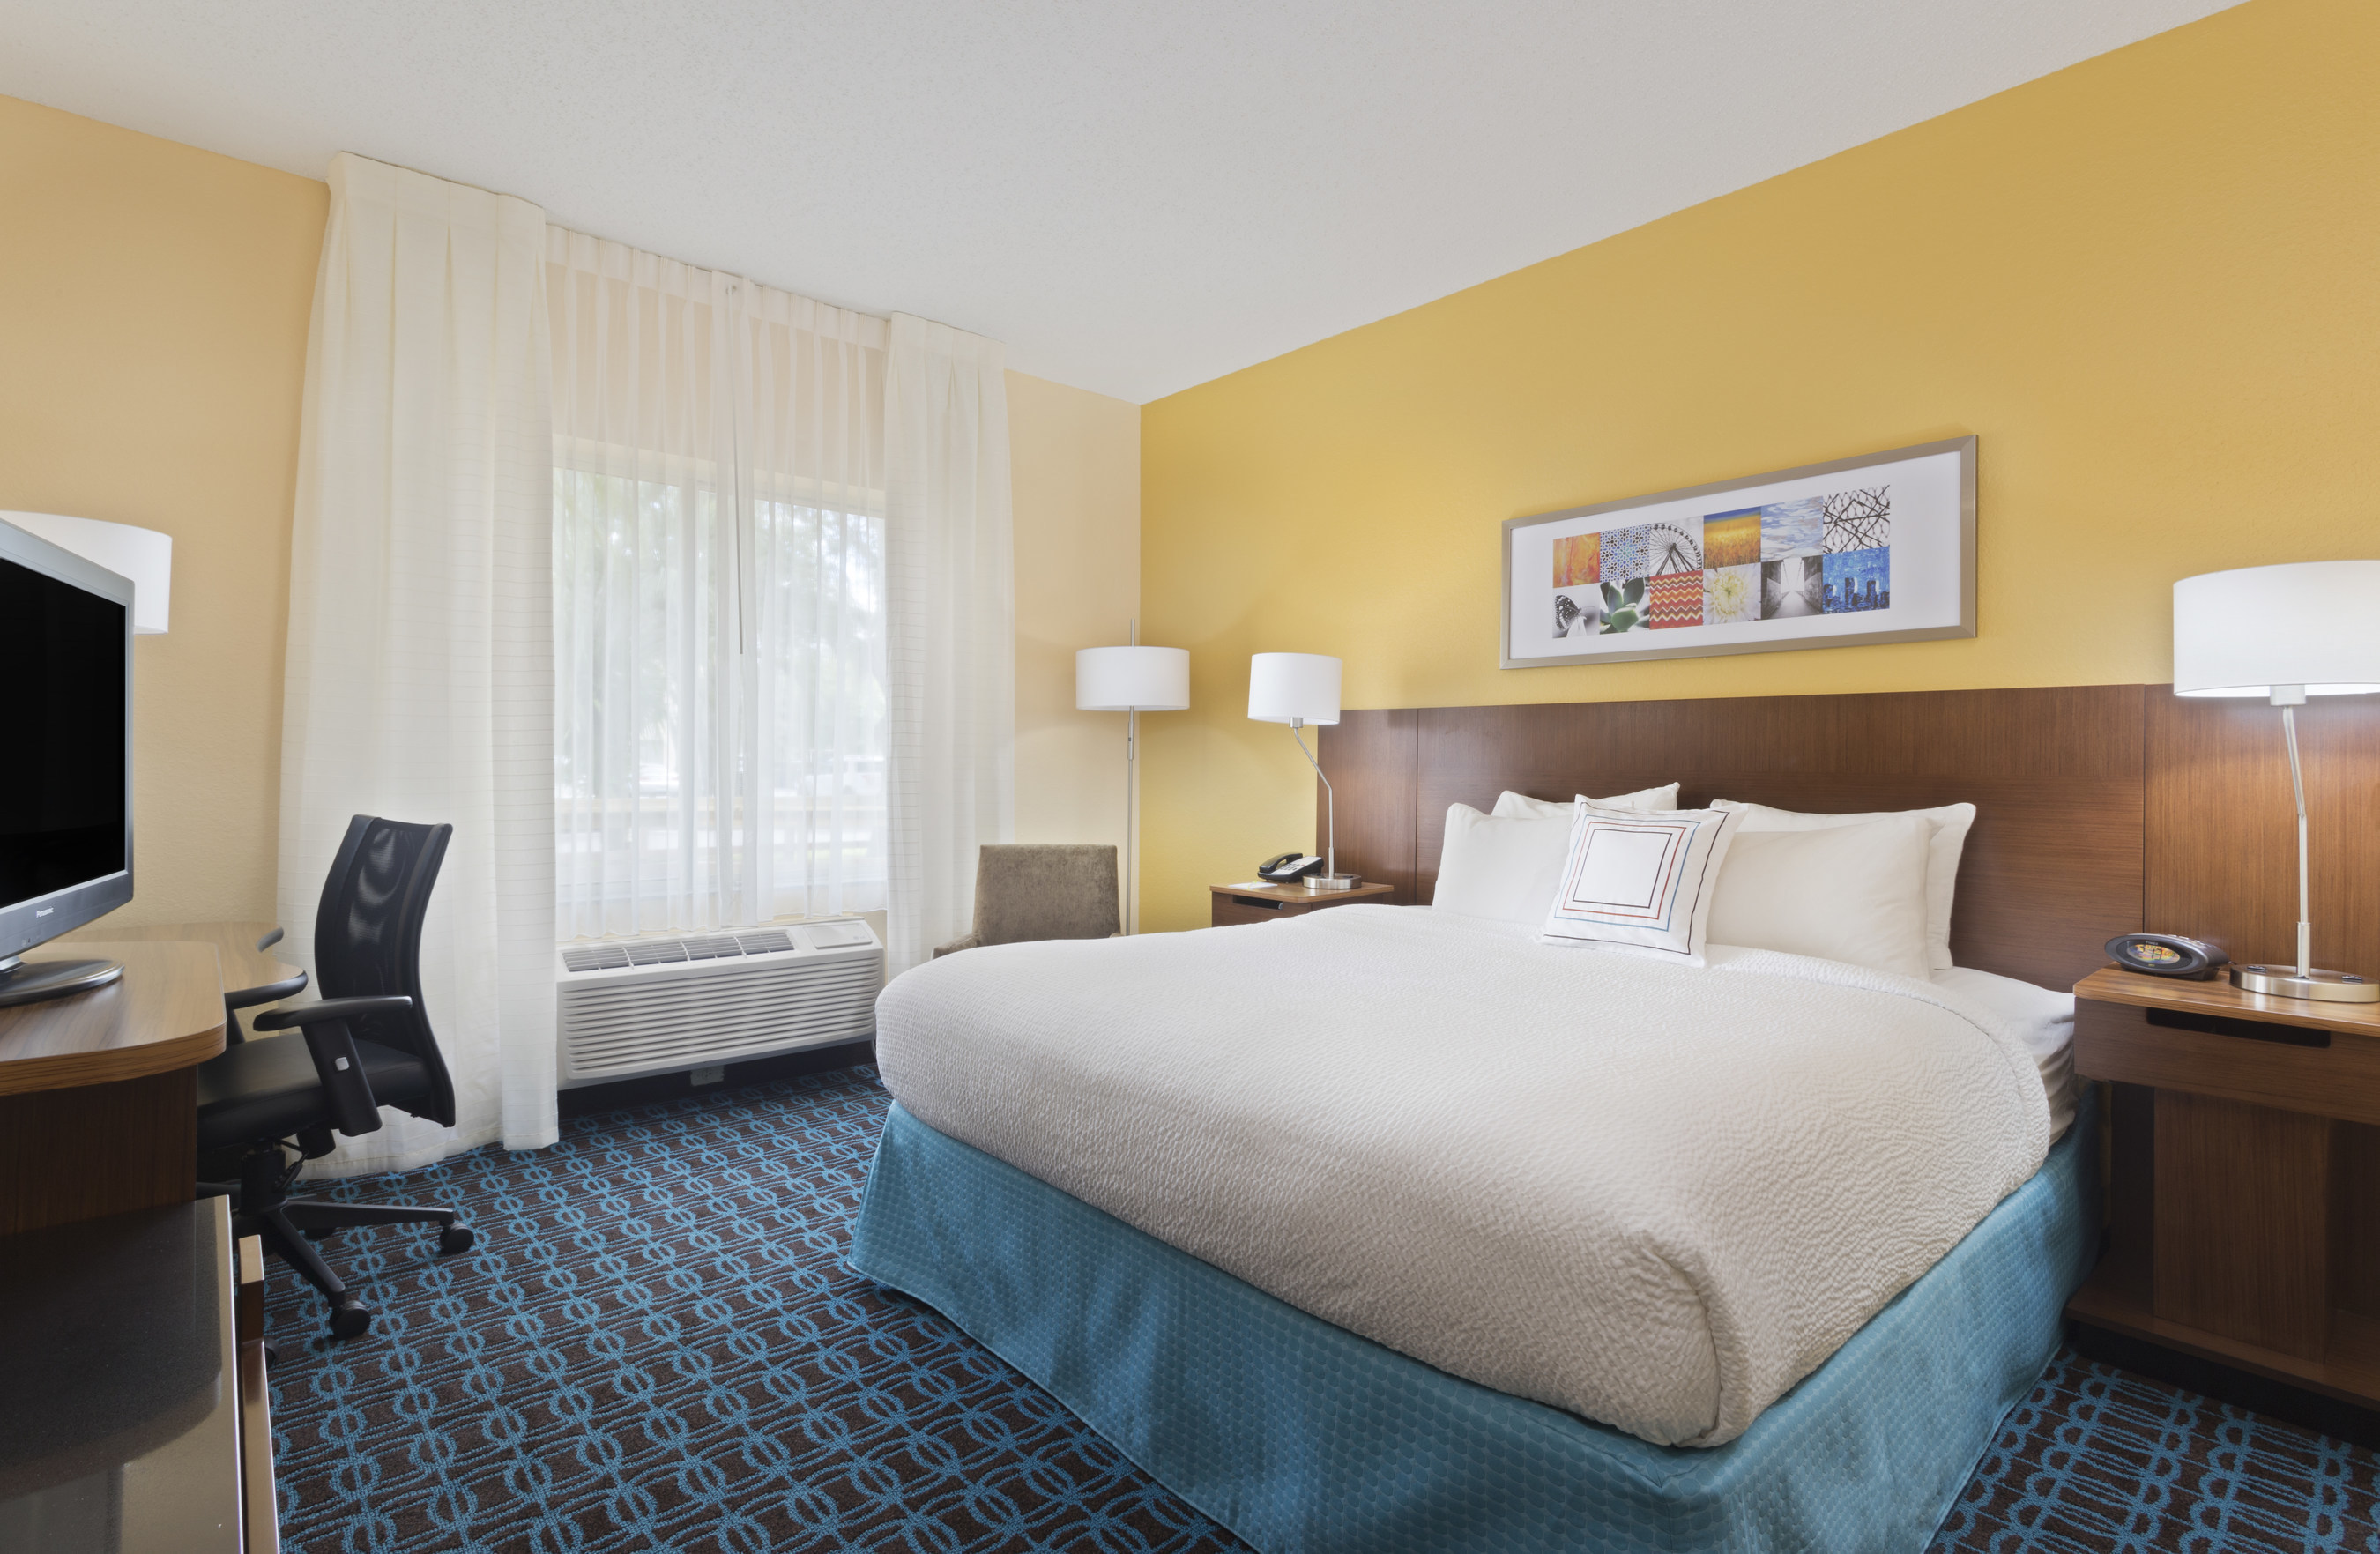 Fairfield Inn & Suites by Marriott is unveiling its smart, inventive guest room design, and its bright and ...